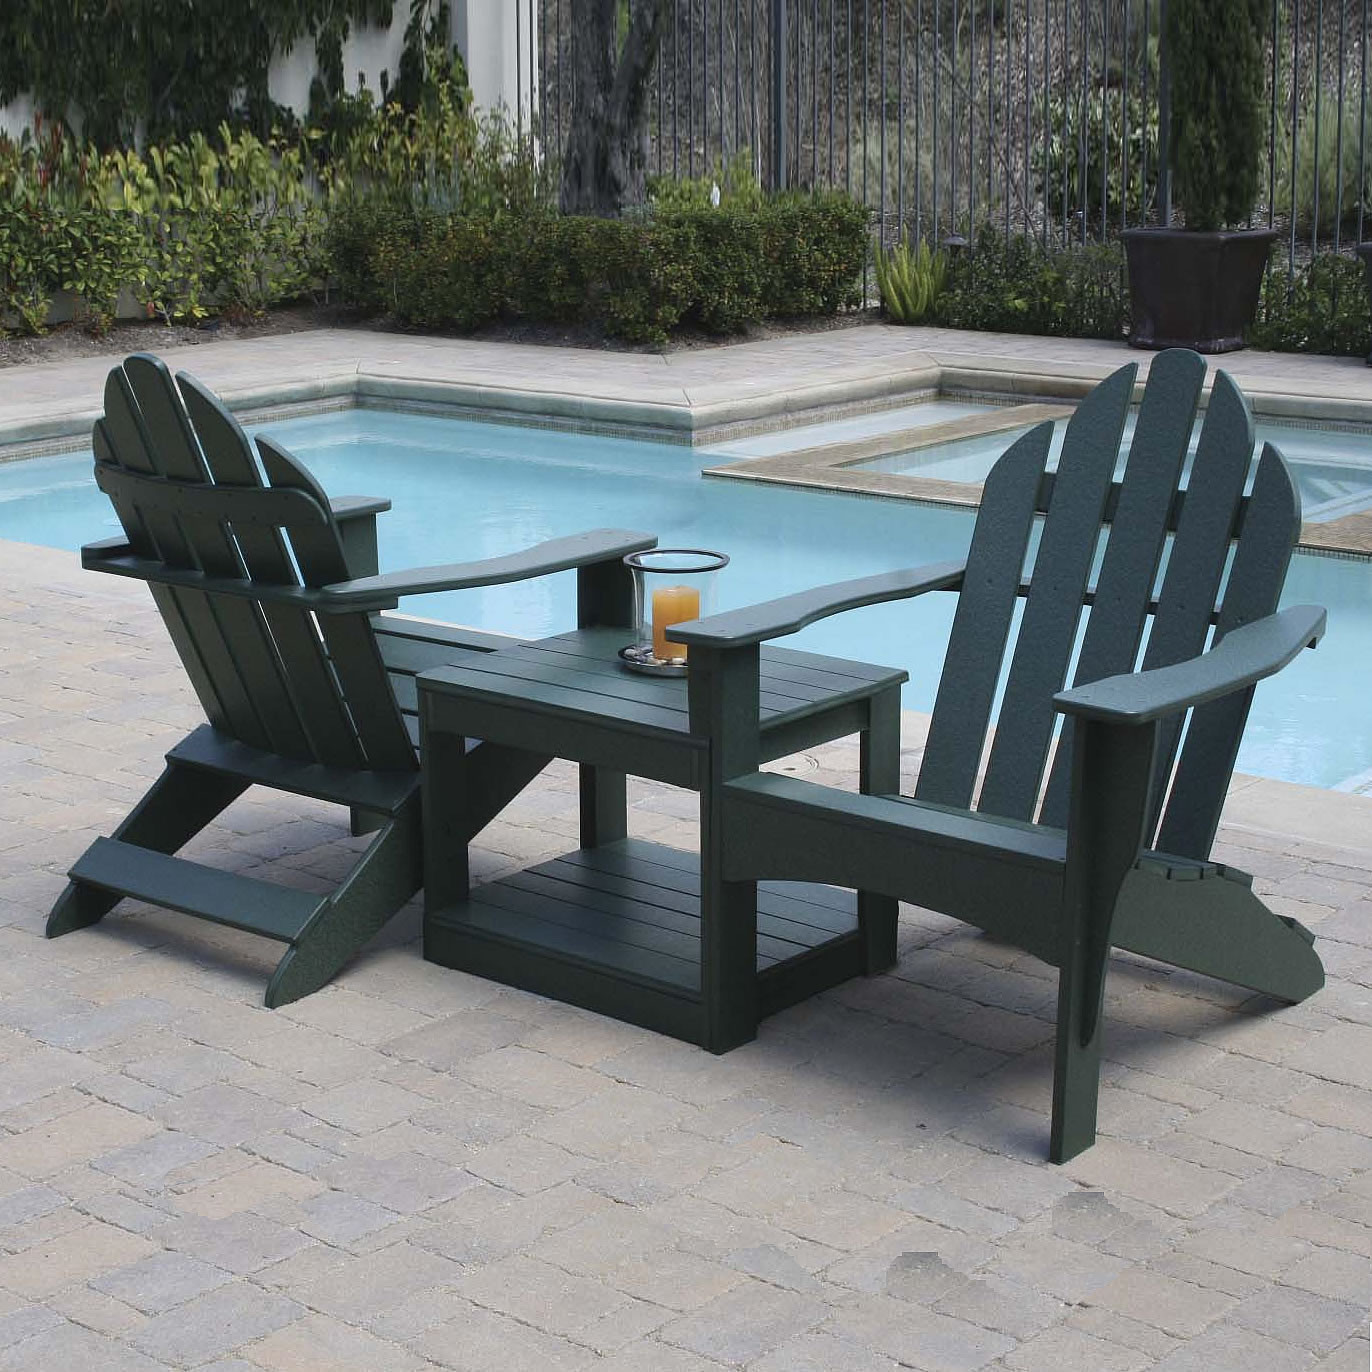 Beau Eagle One   Double Adirondack Chair With Table